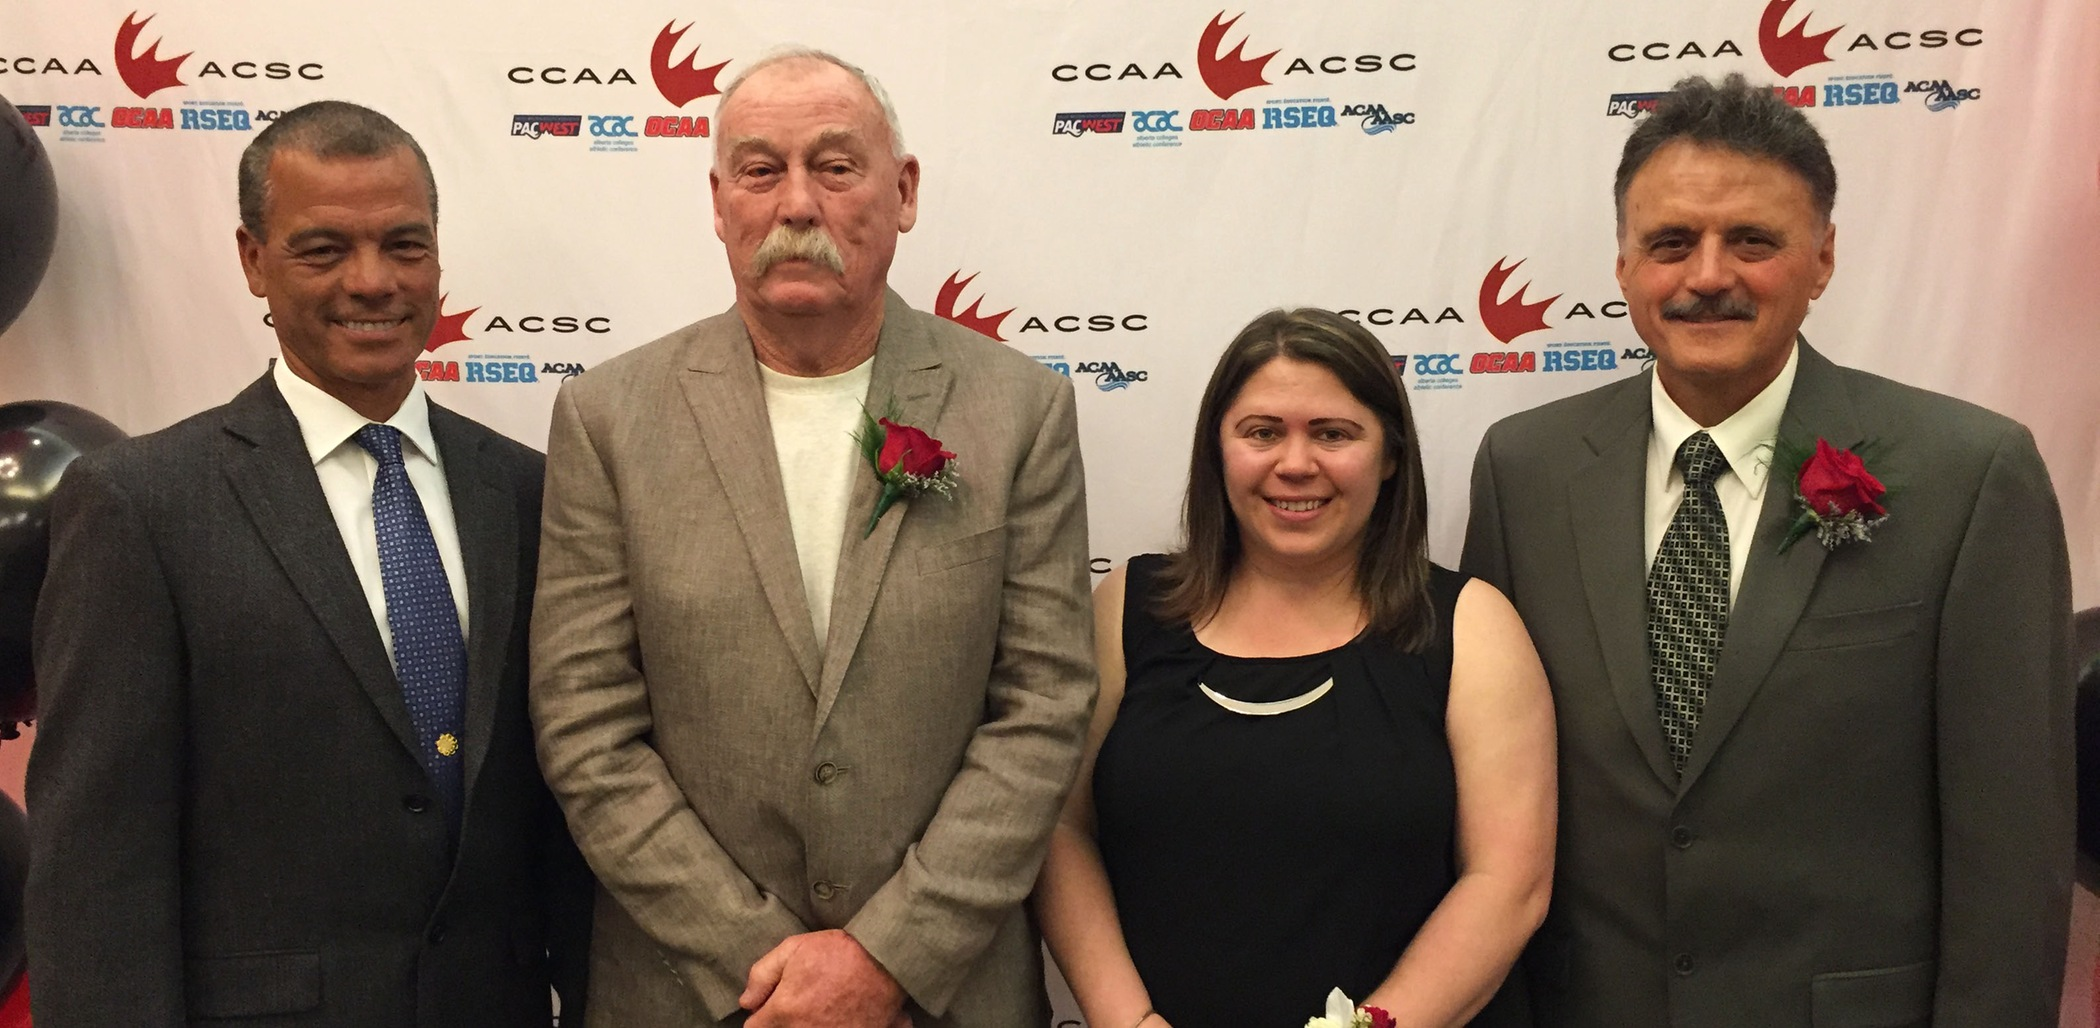 L-R: CapU Manager of Athletics & Recreation Milt Williams, coach inductee Doug Abercrombie, athlete inductee Melissa Artuso, coach inductee Joe Iacobellis